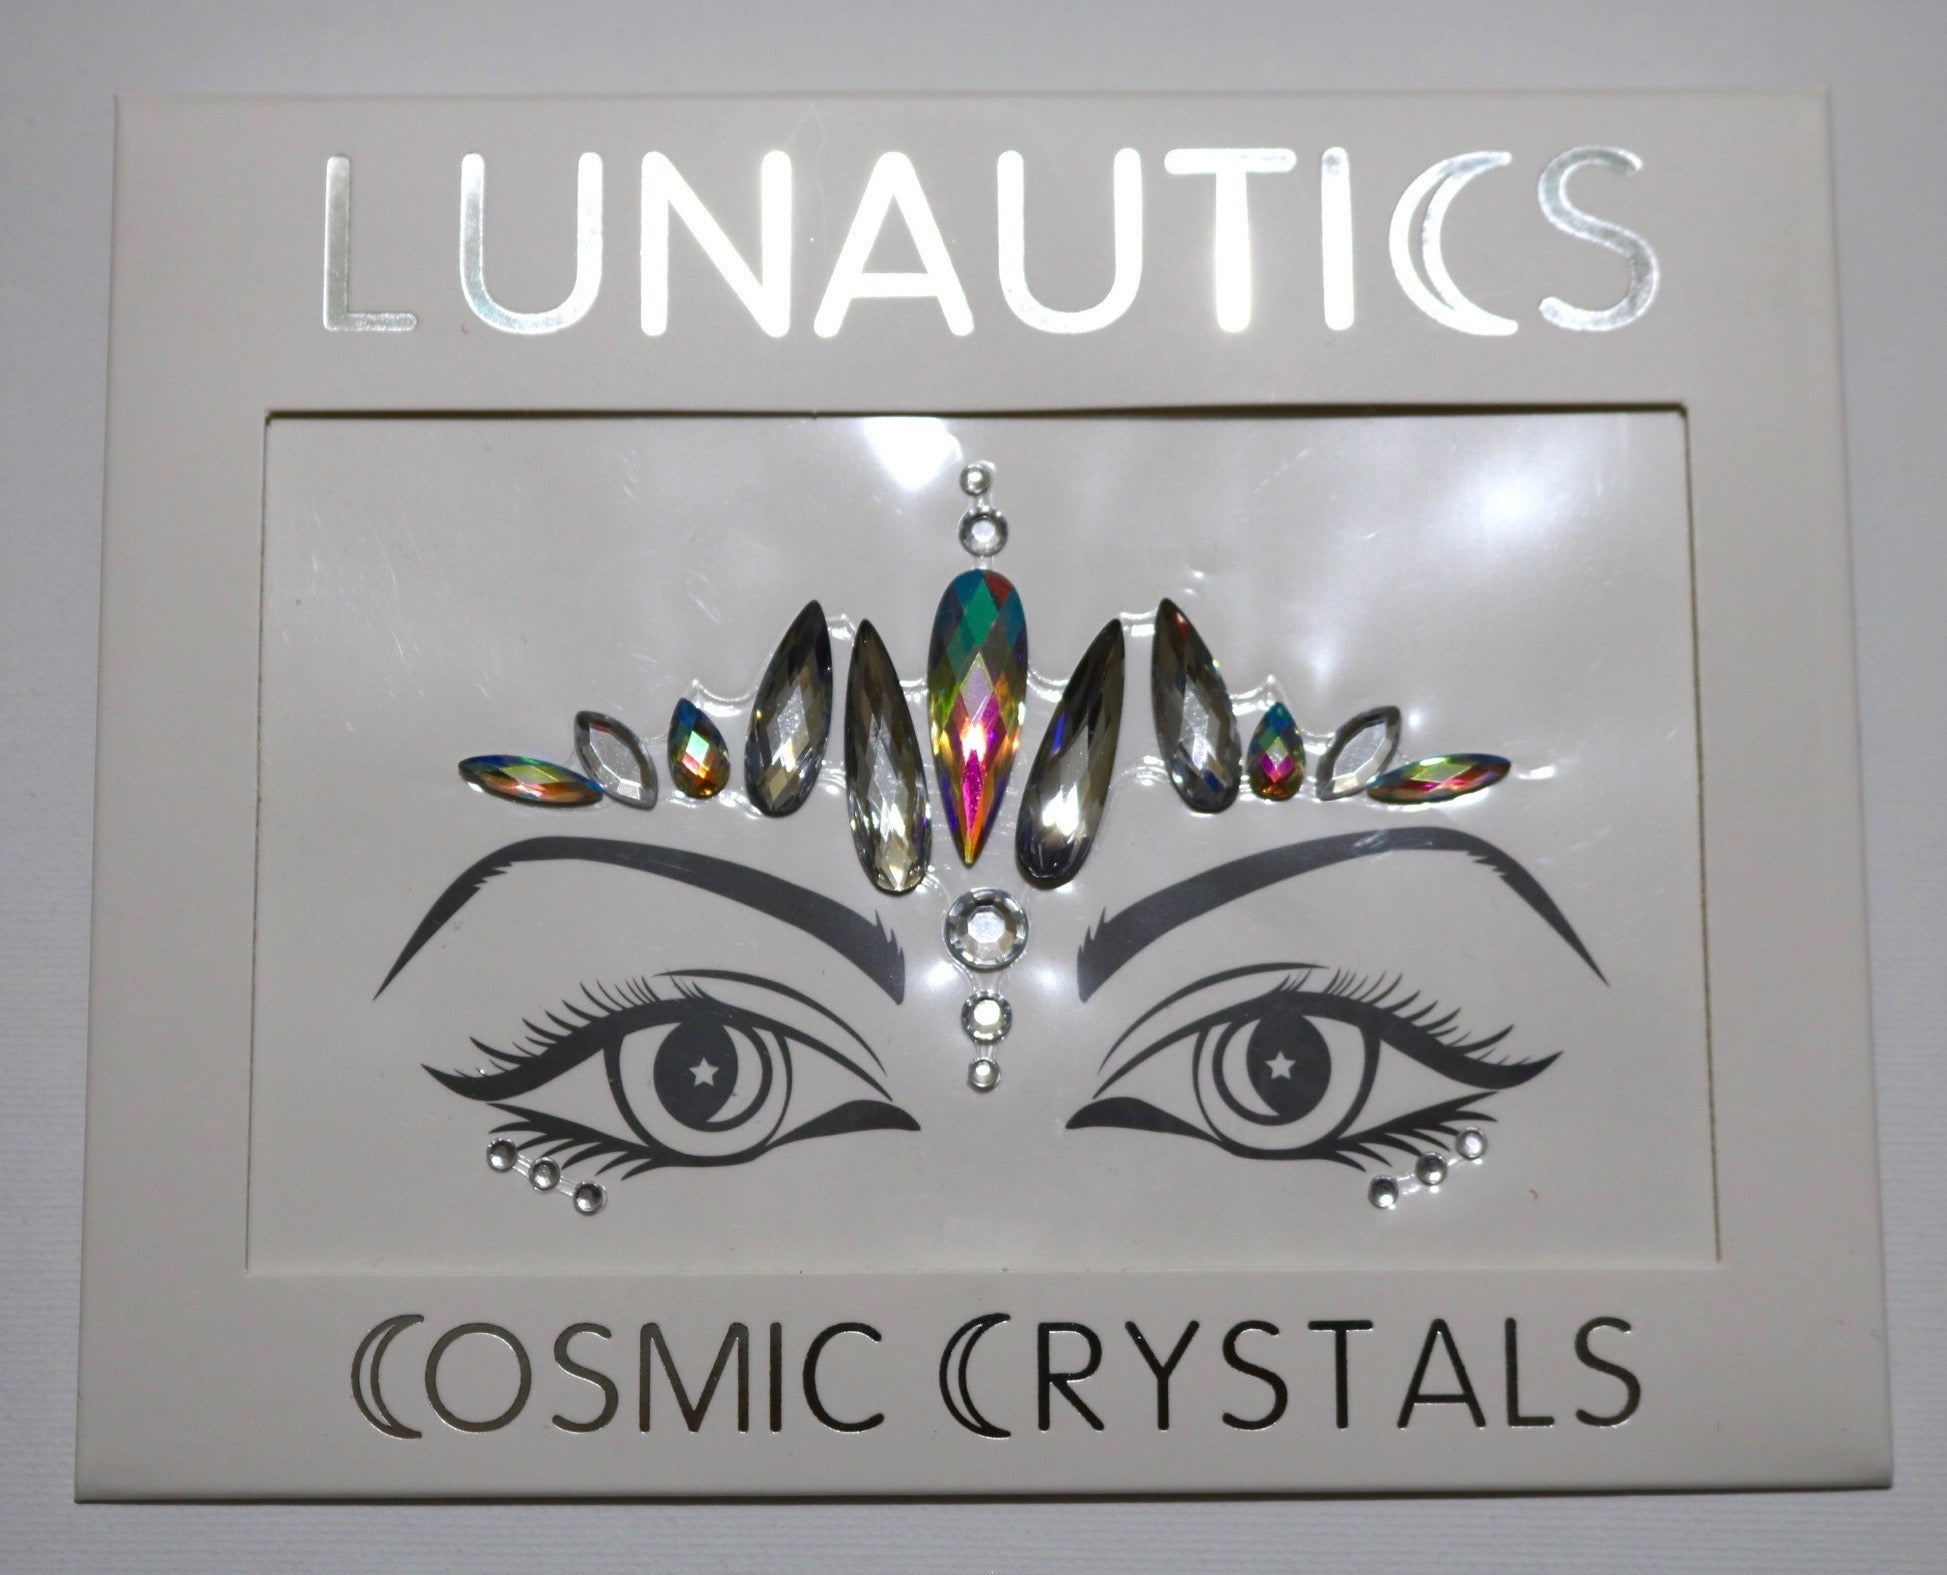 Lunautics Cosmic Crystals - Polar Princess